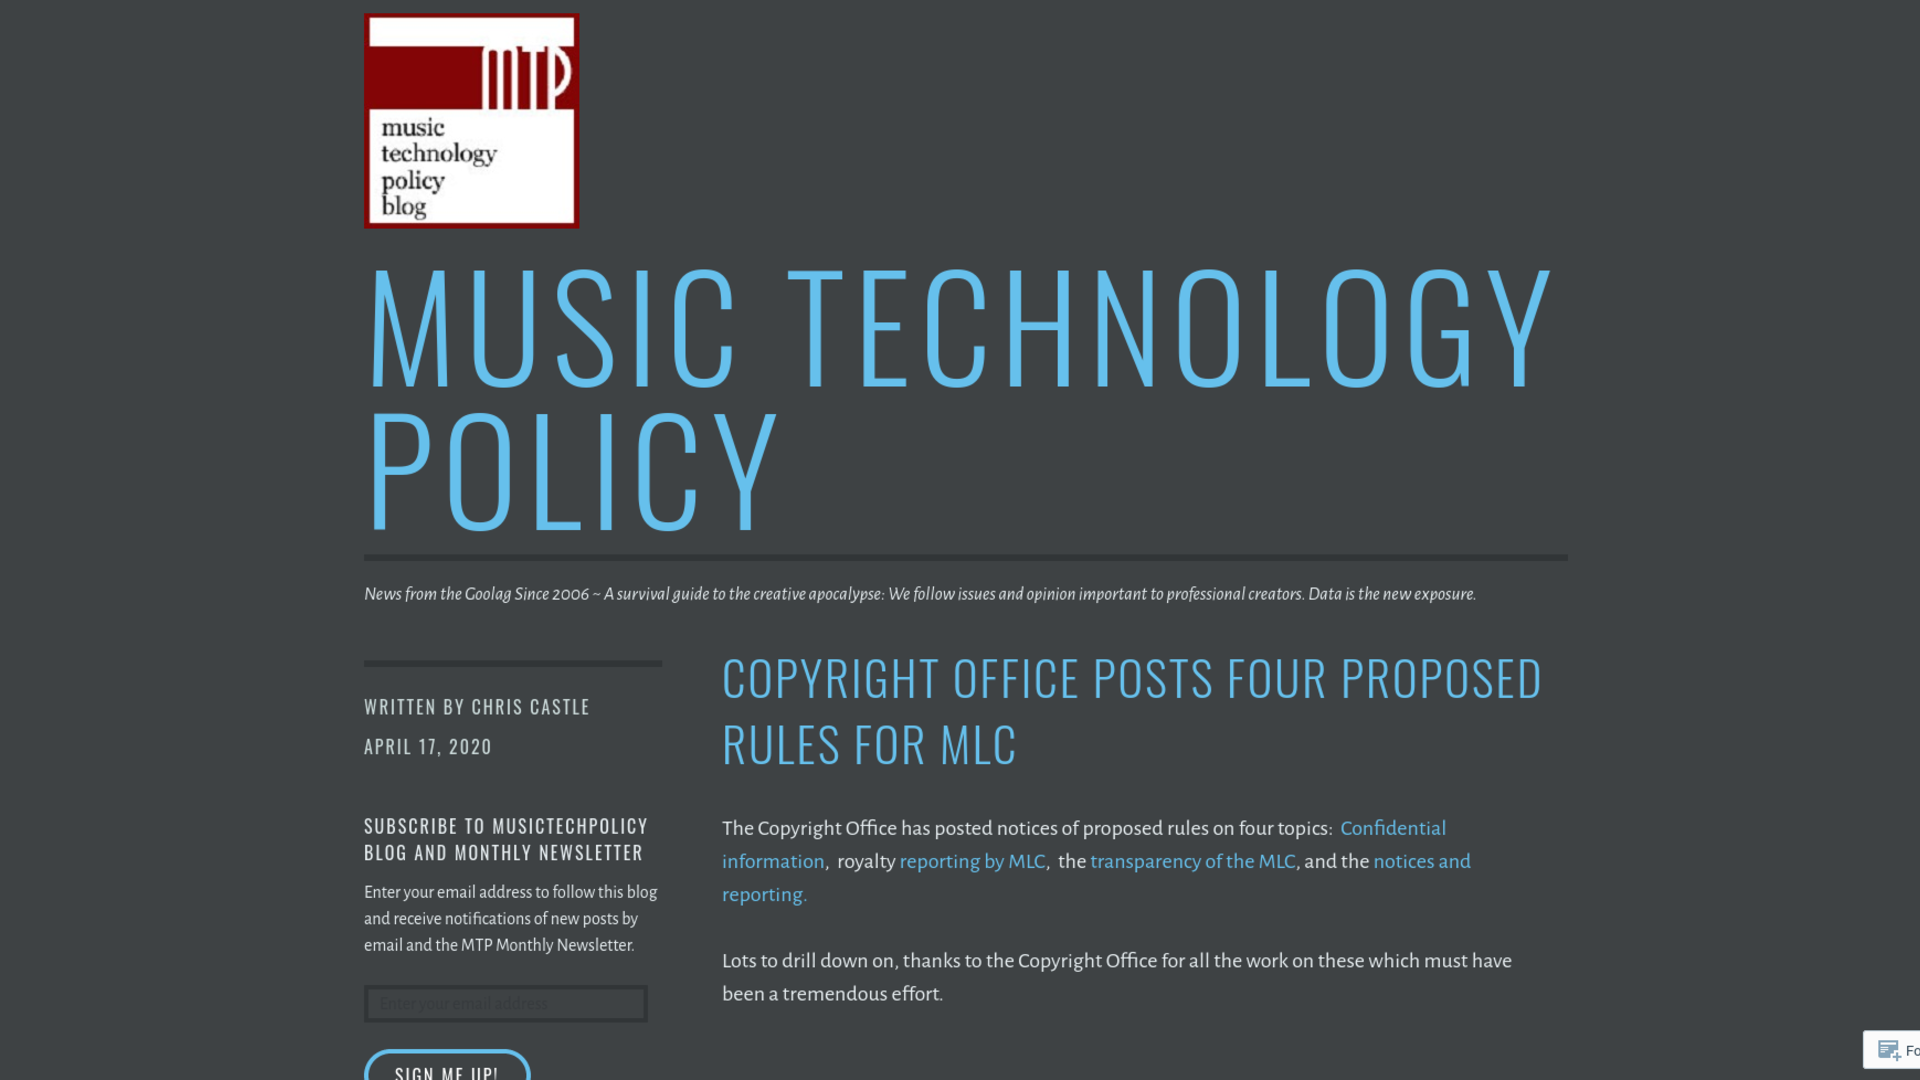 Fairness Rocks News Copyright Office Posts Four Proposed Rules for MLC